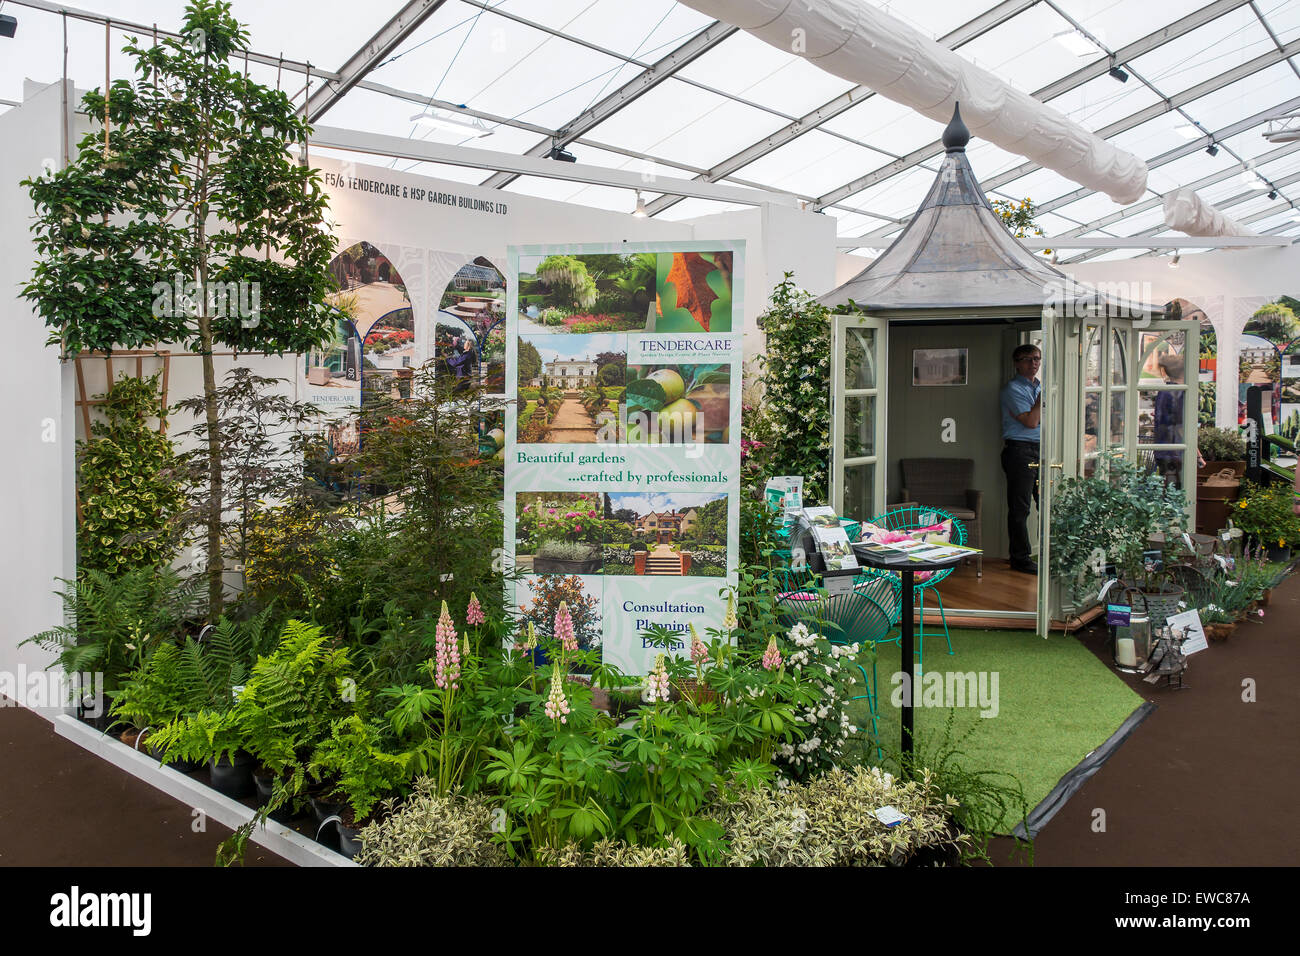 Grow London Show Hampstead Tendercare Garden Design Exhibition Stand